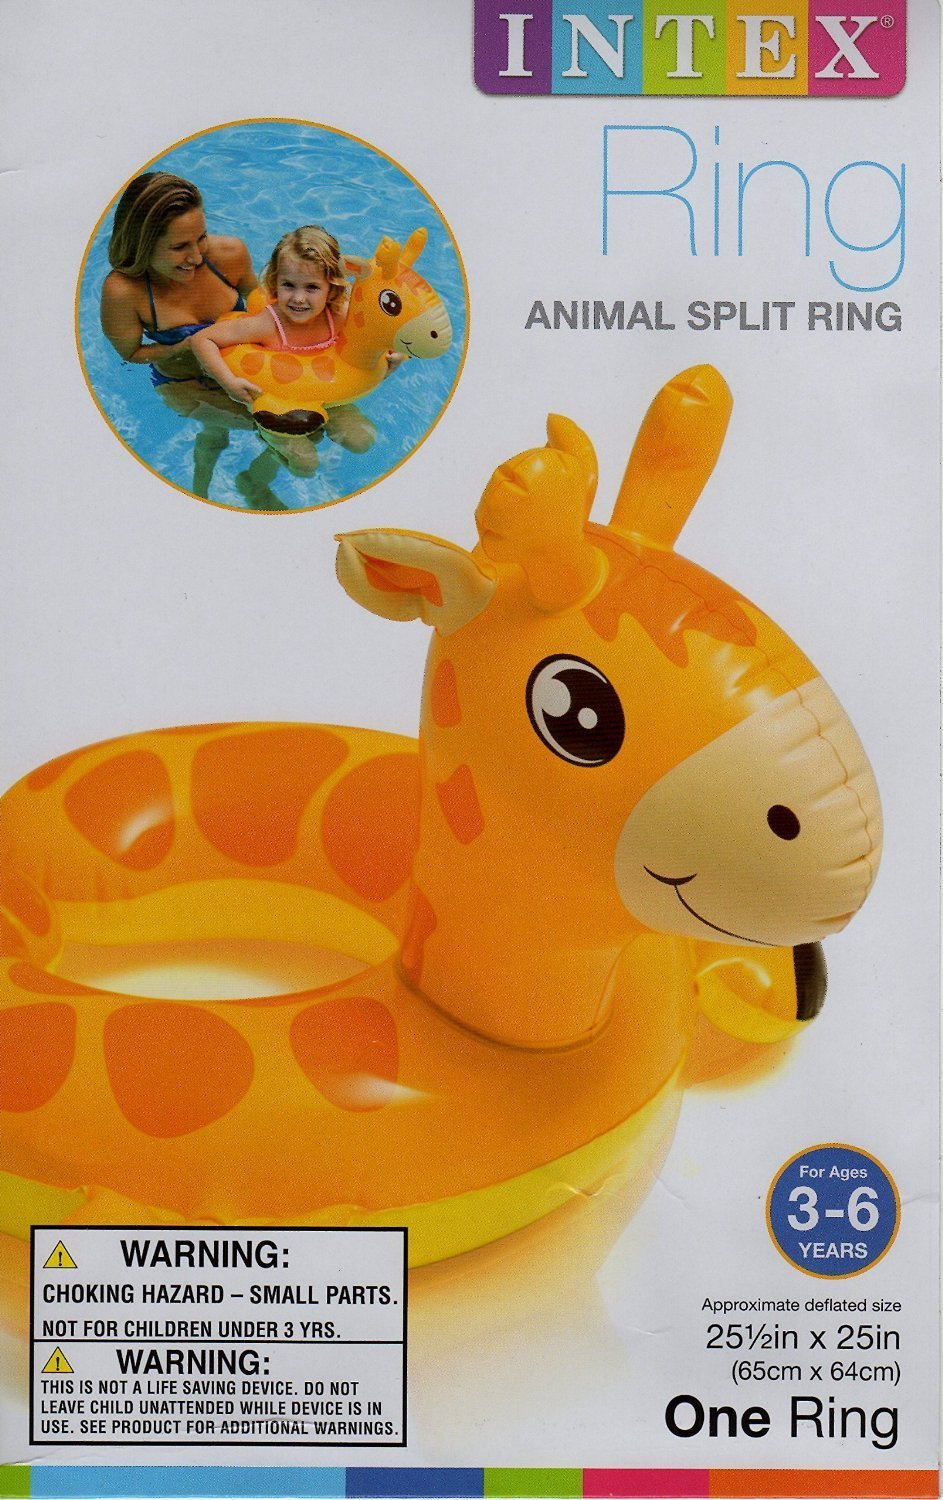 Amazon.com: Intex Animal Split Ring Pool Floats Set Bundle Includes Zebra, Frog Giraffe - 3 Pack (Assorted Designs): Toys & Games